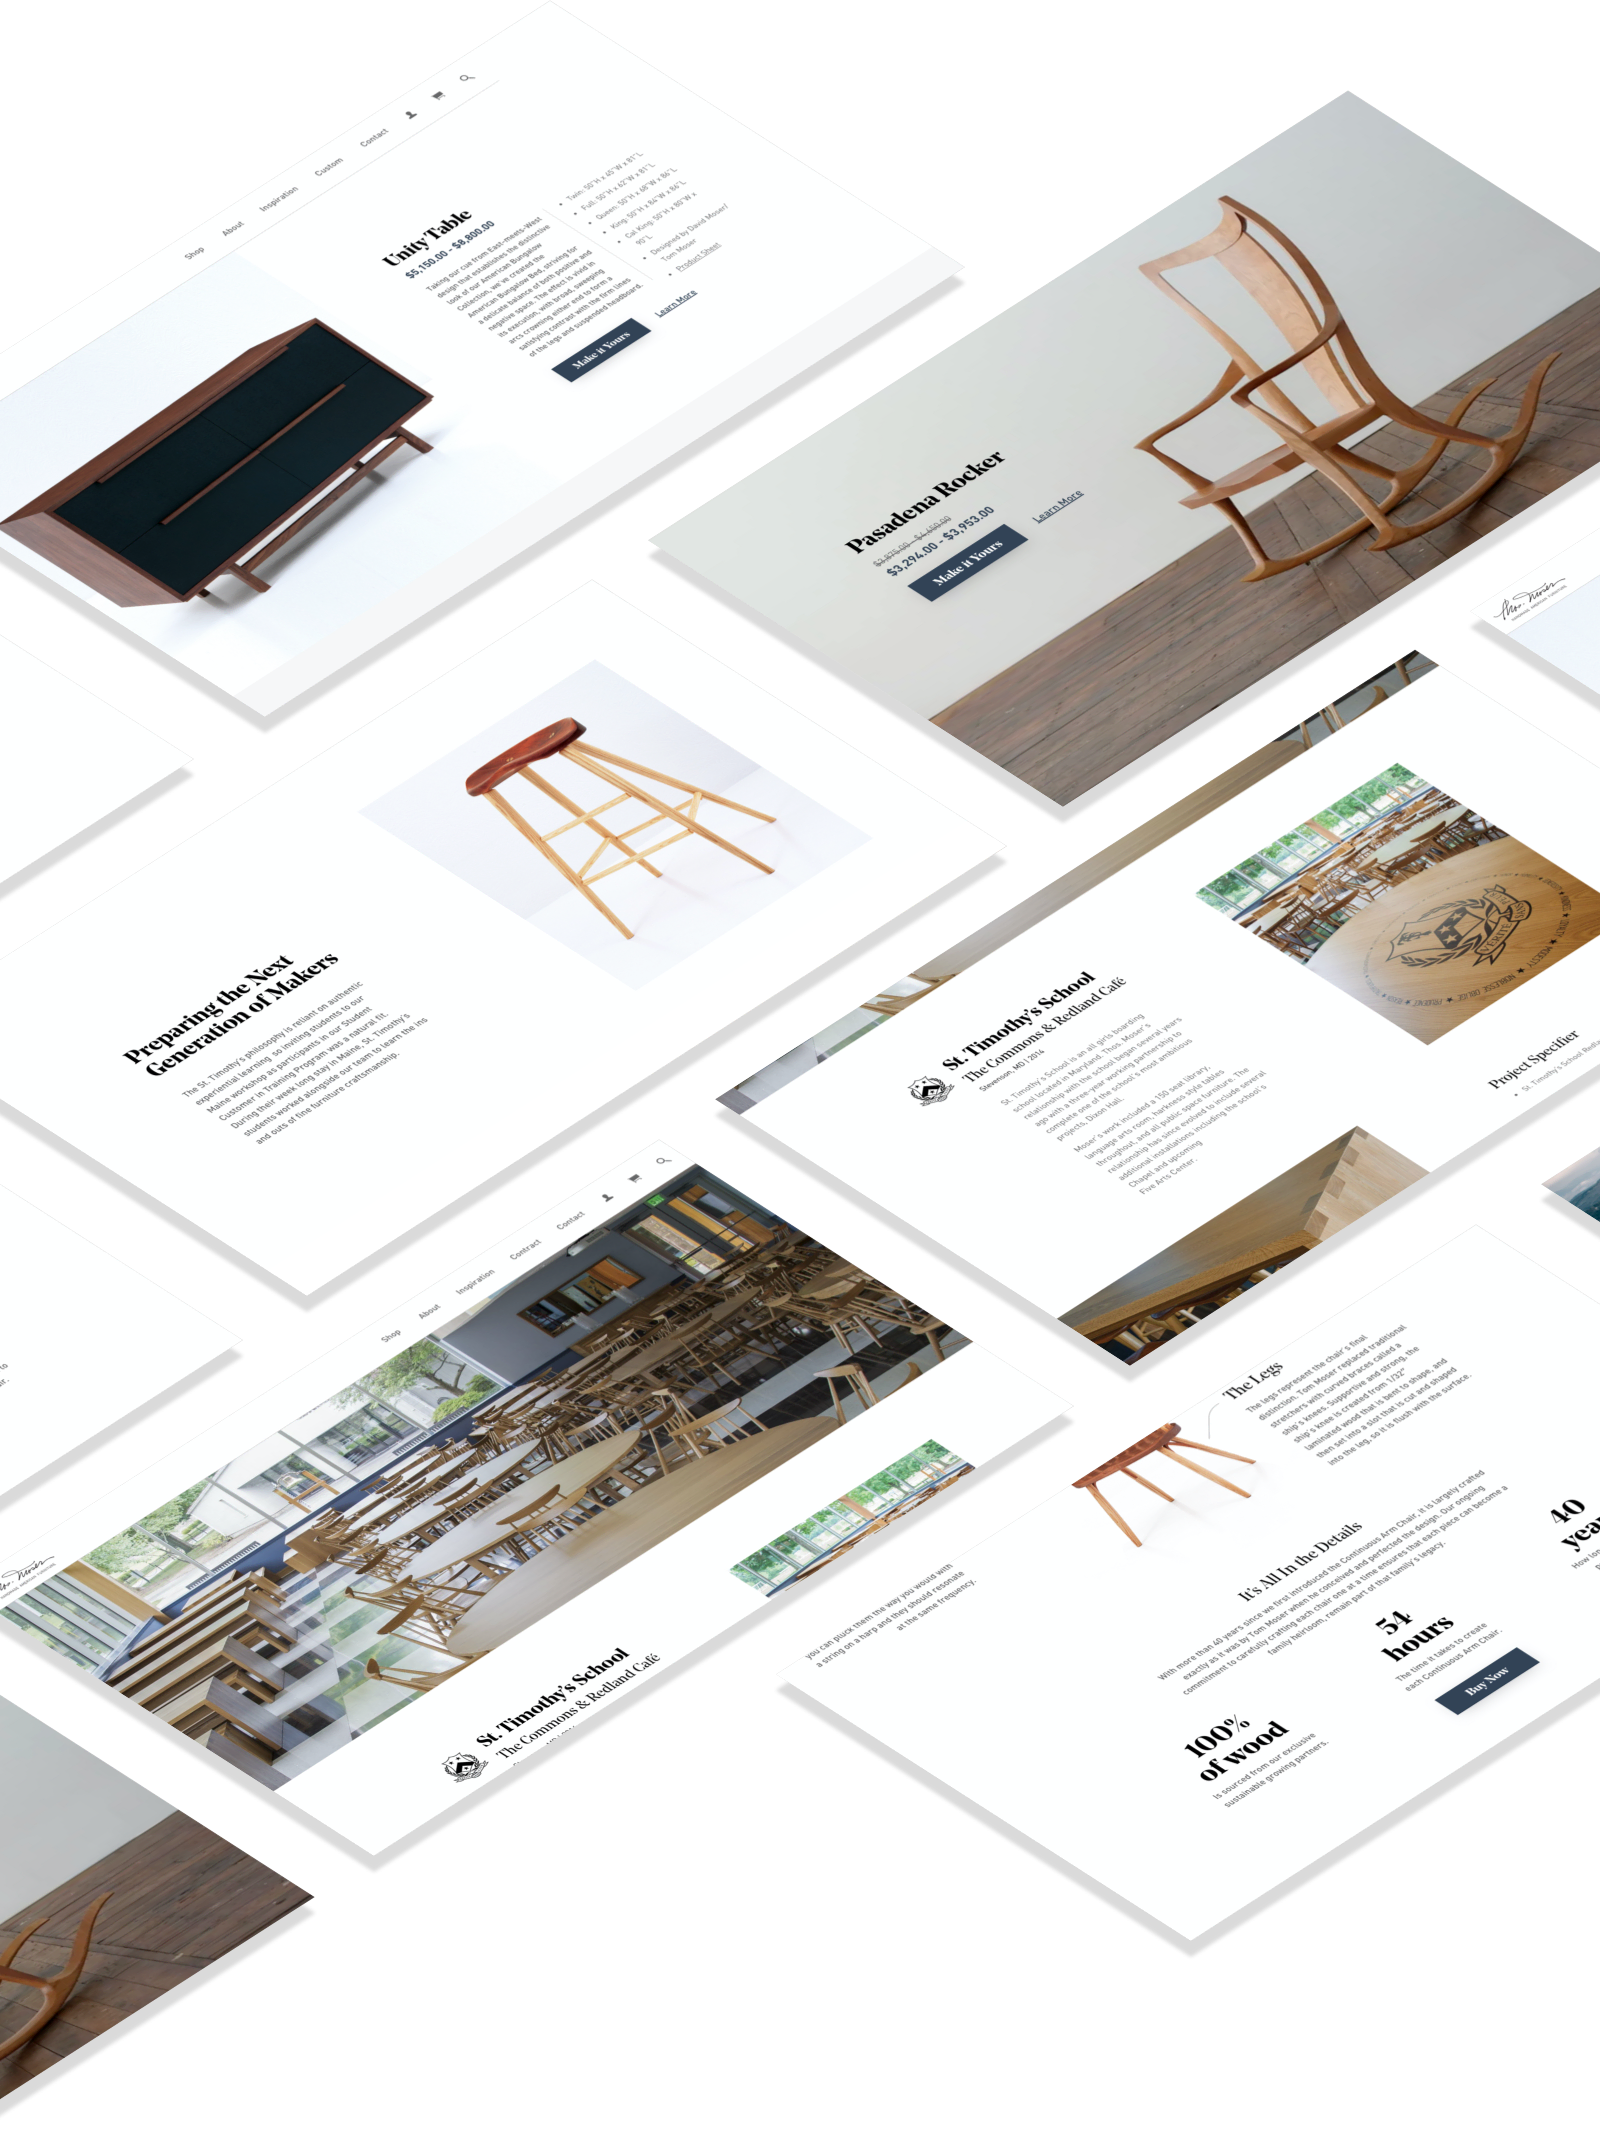 3D grid of Thos Moser website design screenshots featuring the product page and contract page.